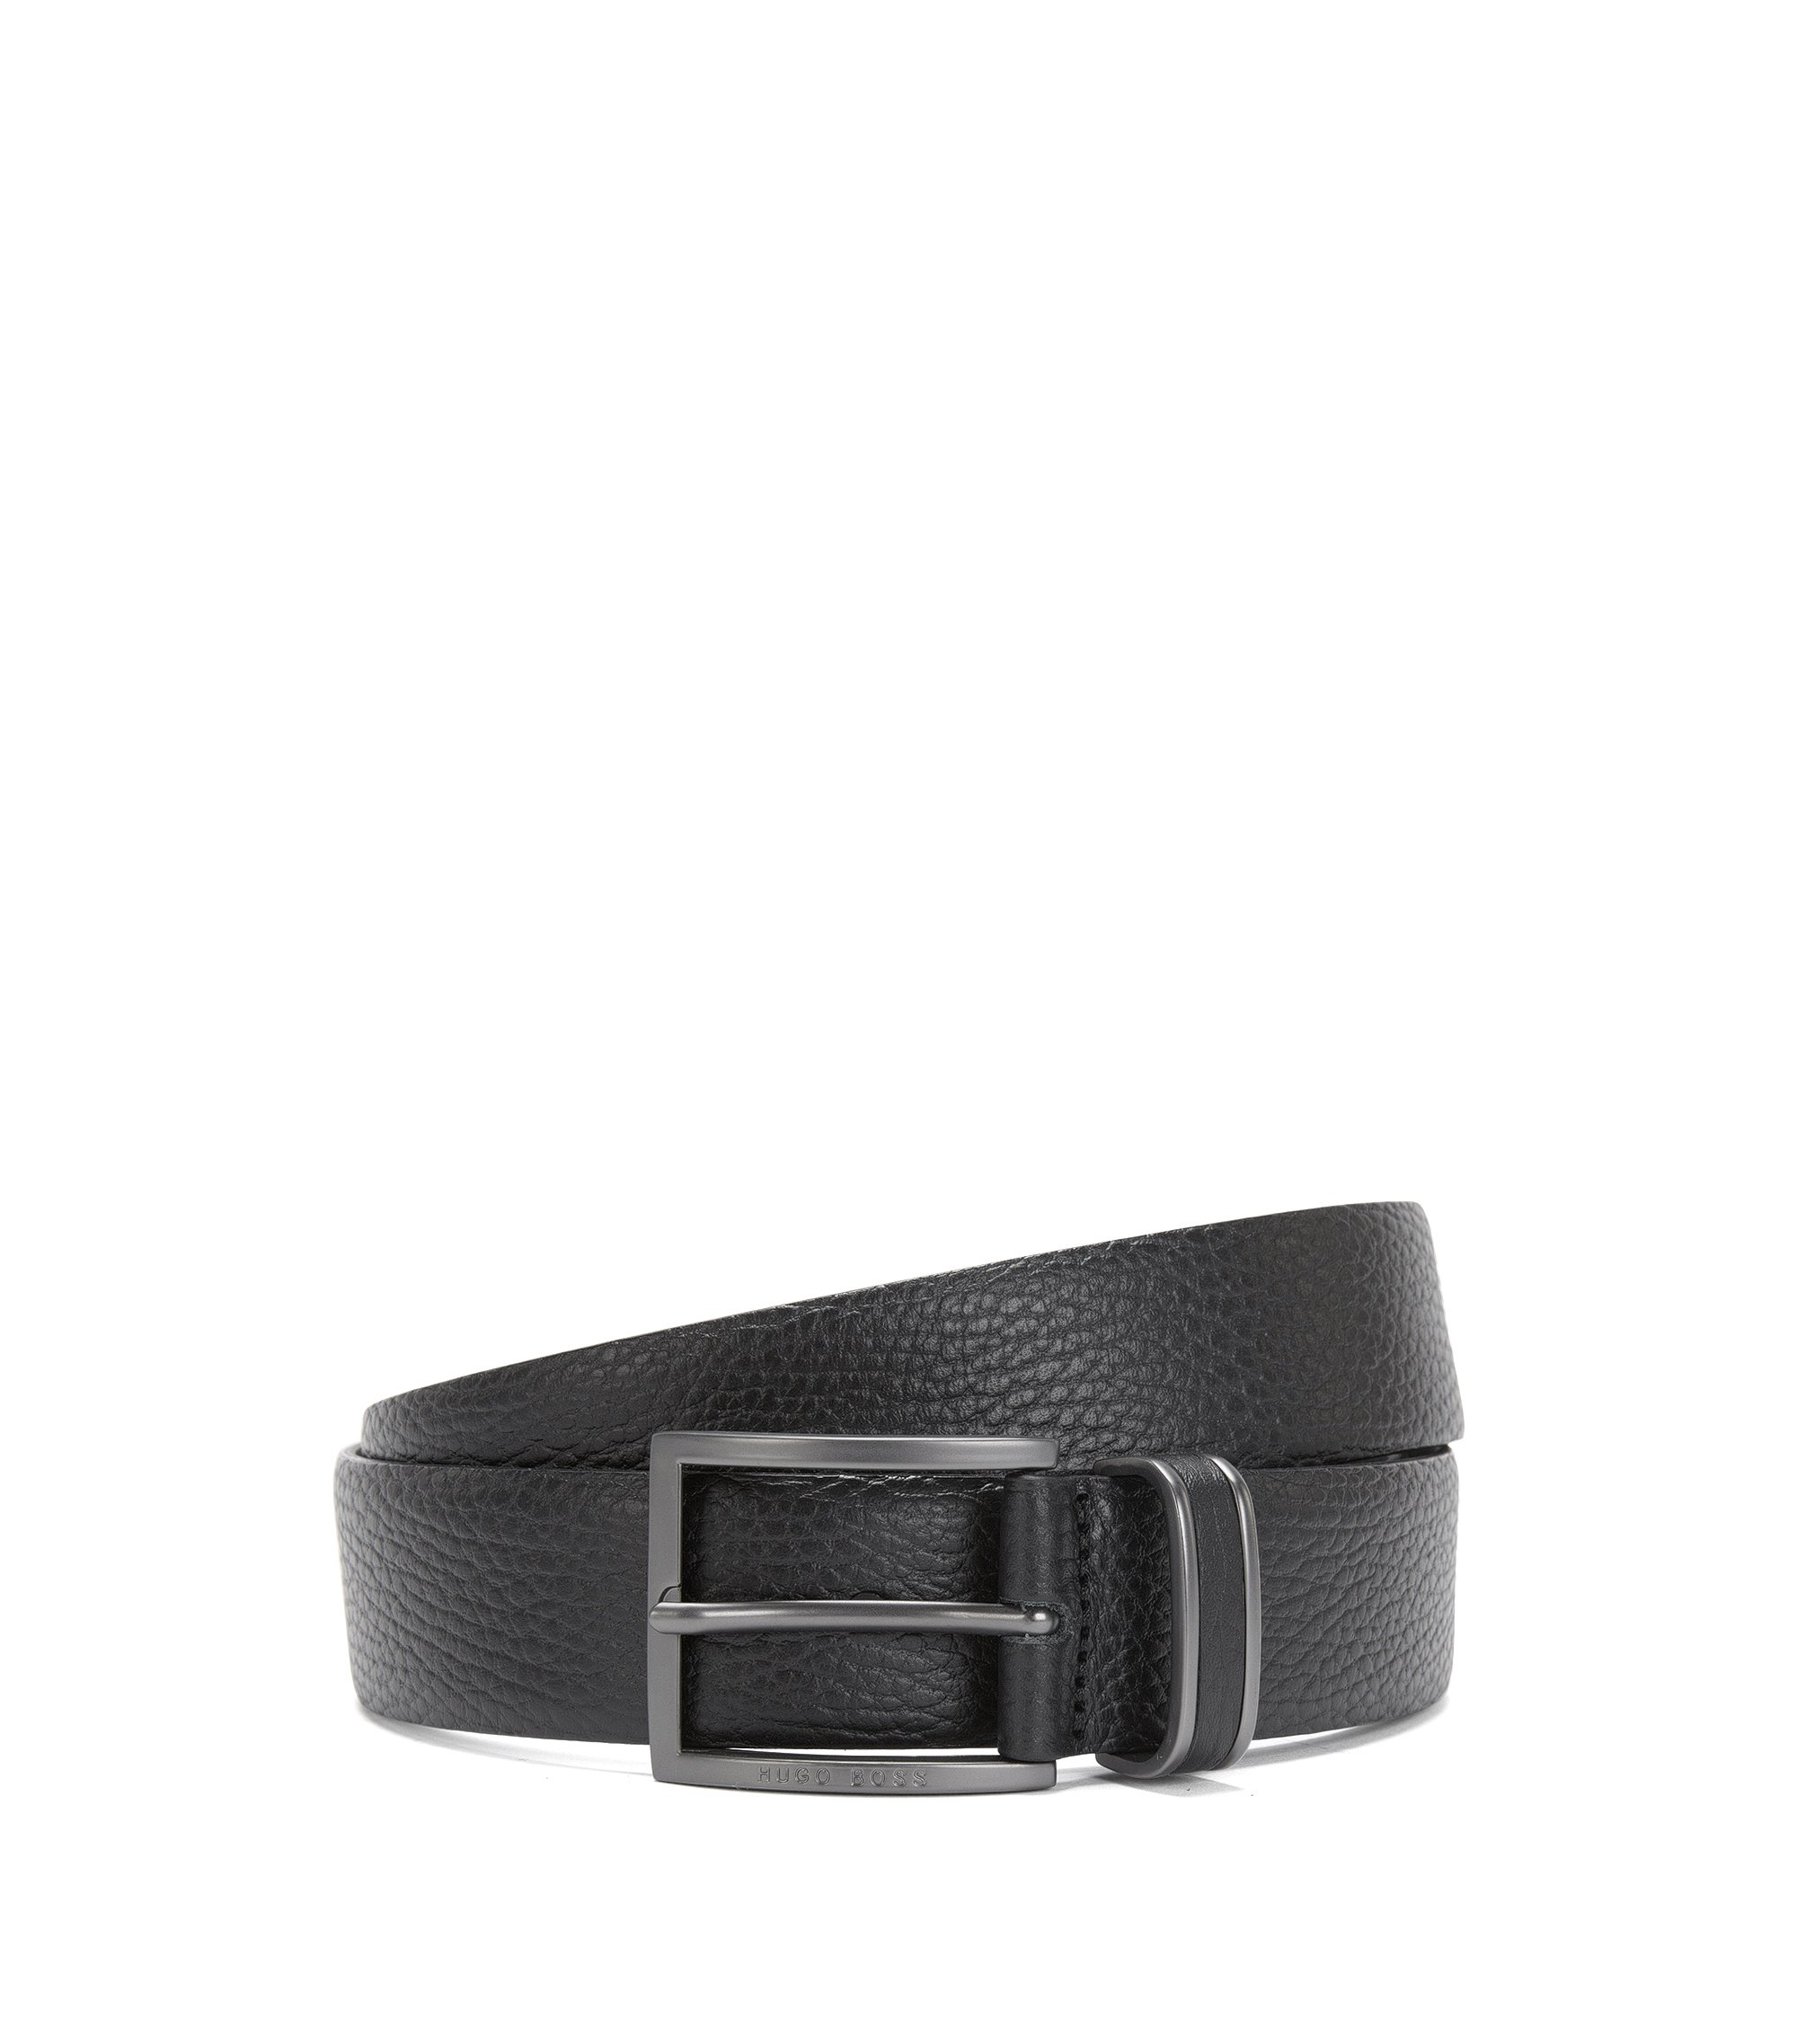 Italian Grained Leather Belt | Sopprin Sz Itgr, Black